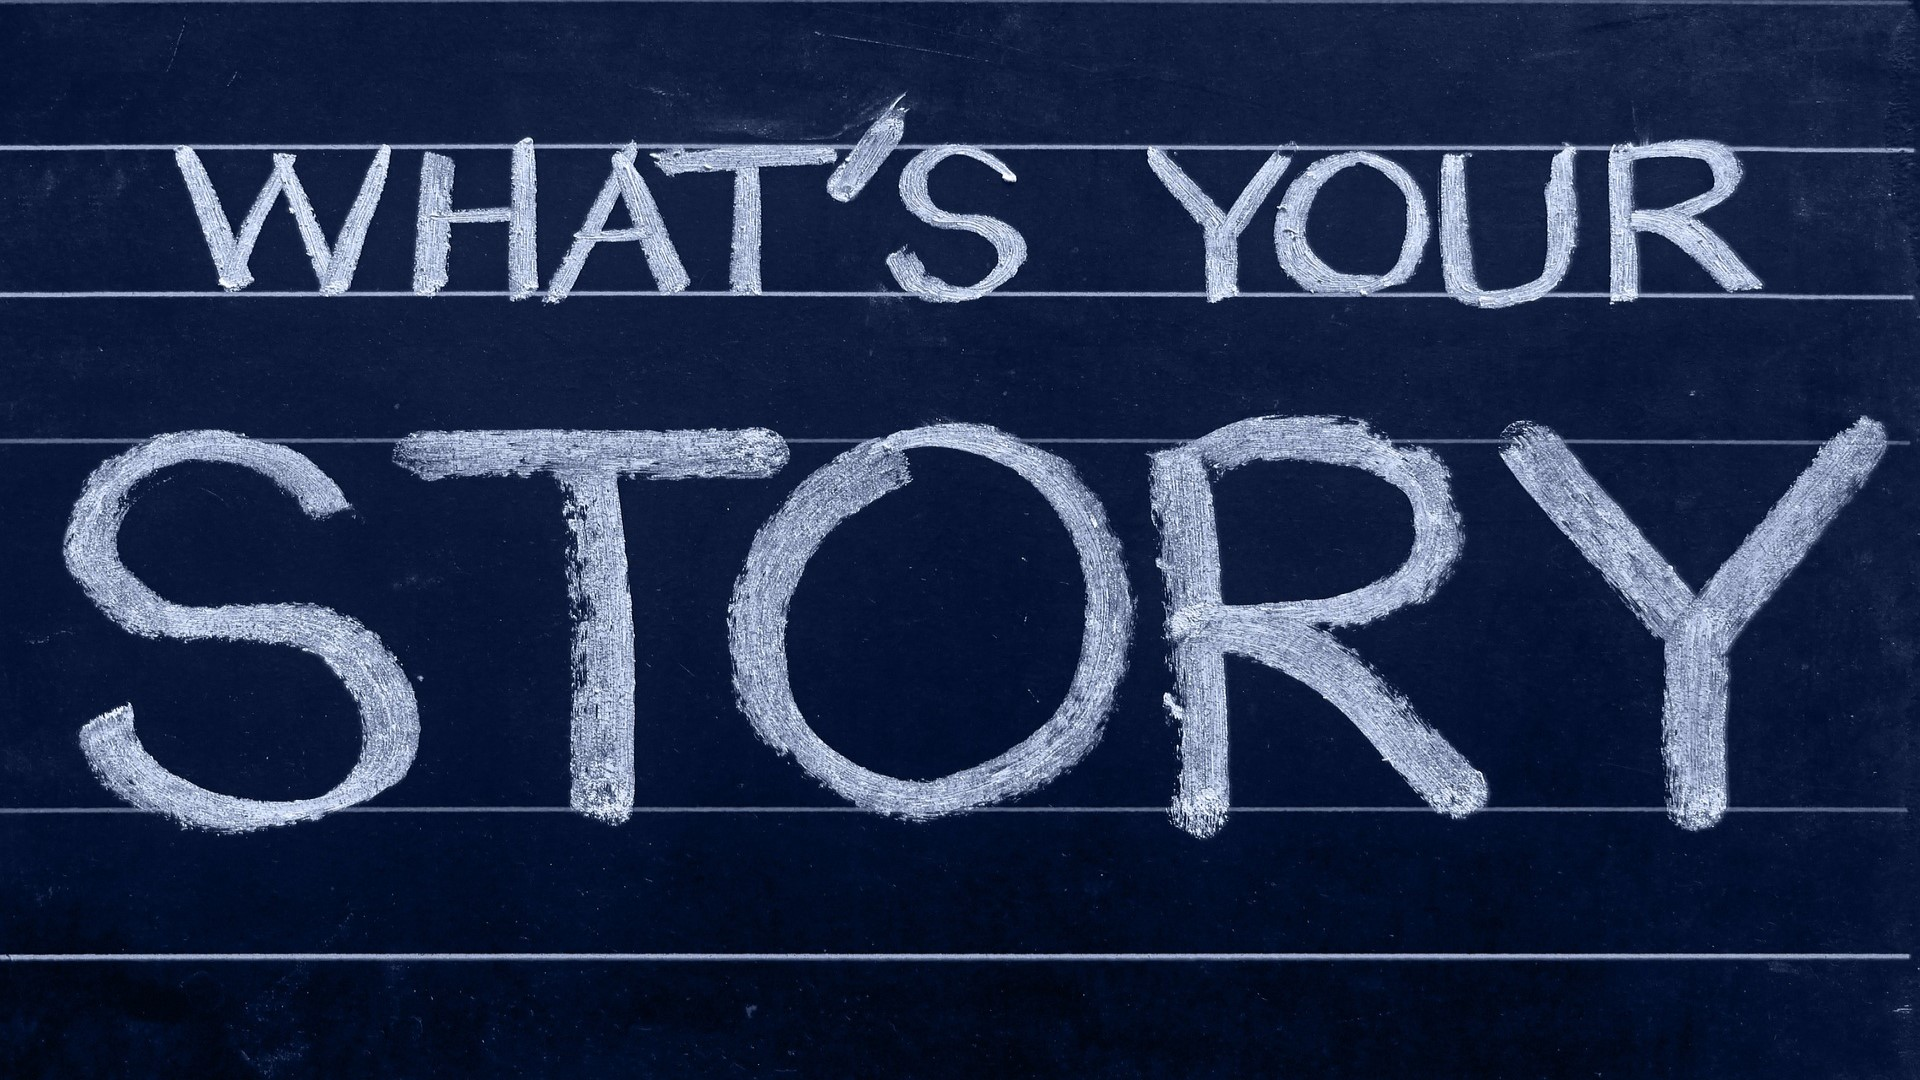 What's your story is your Brand Identity.